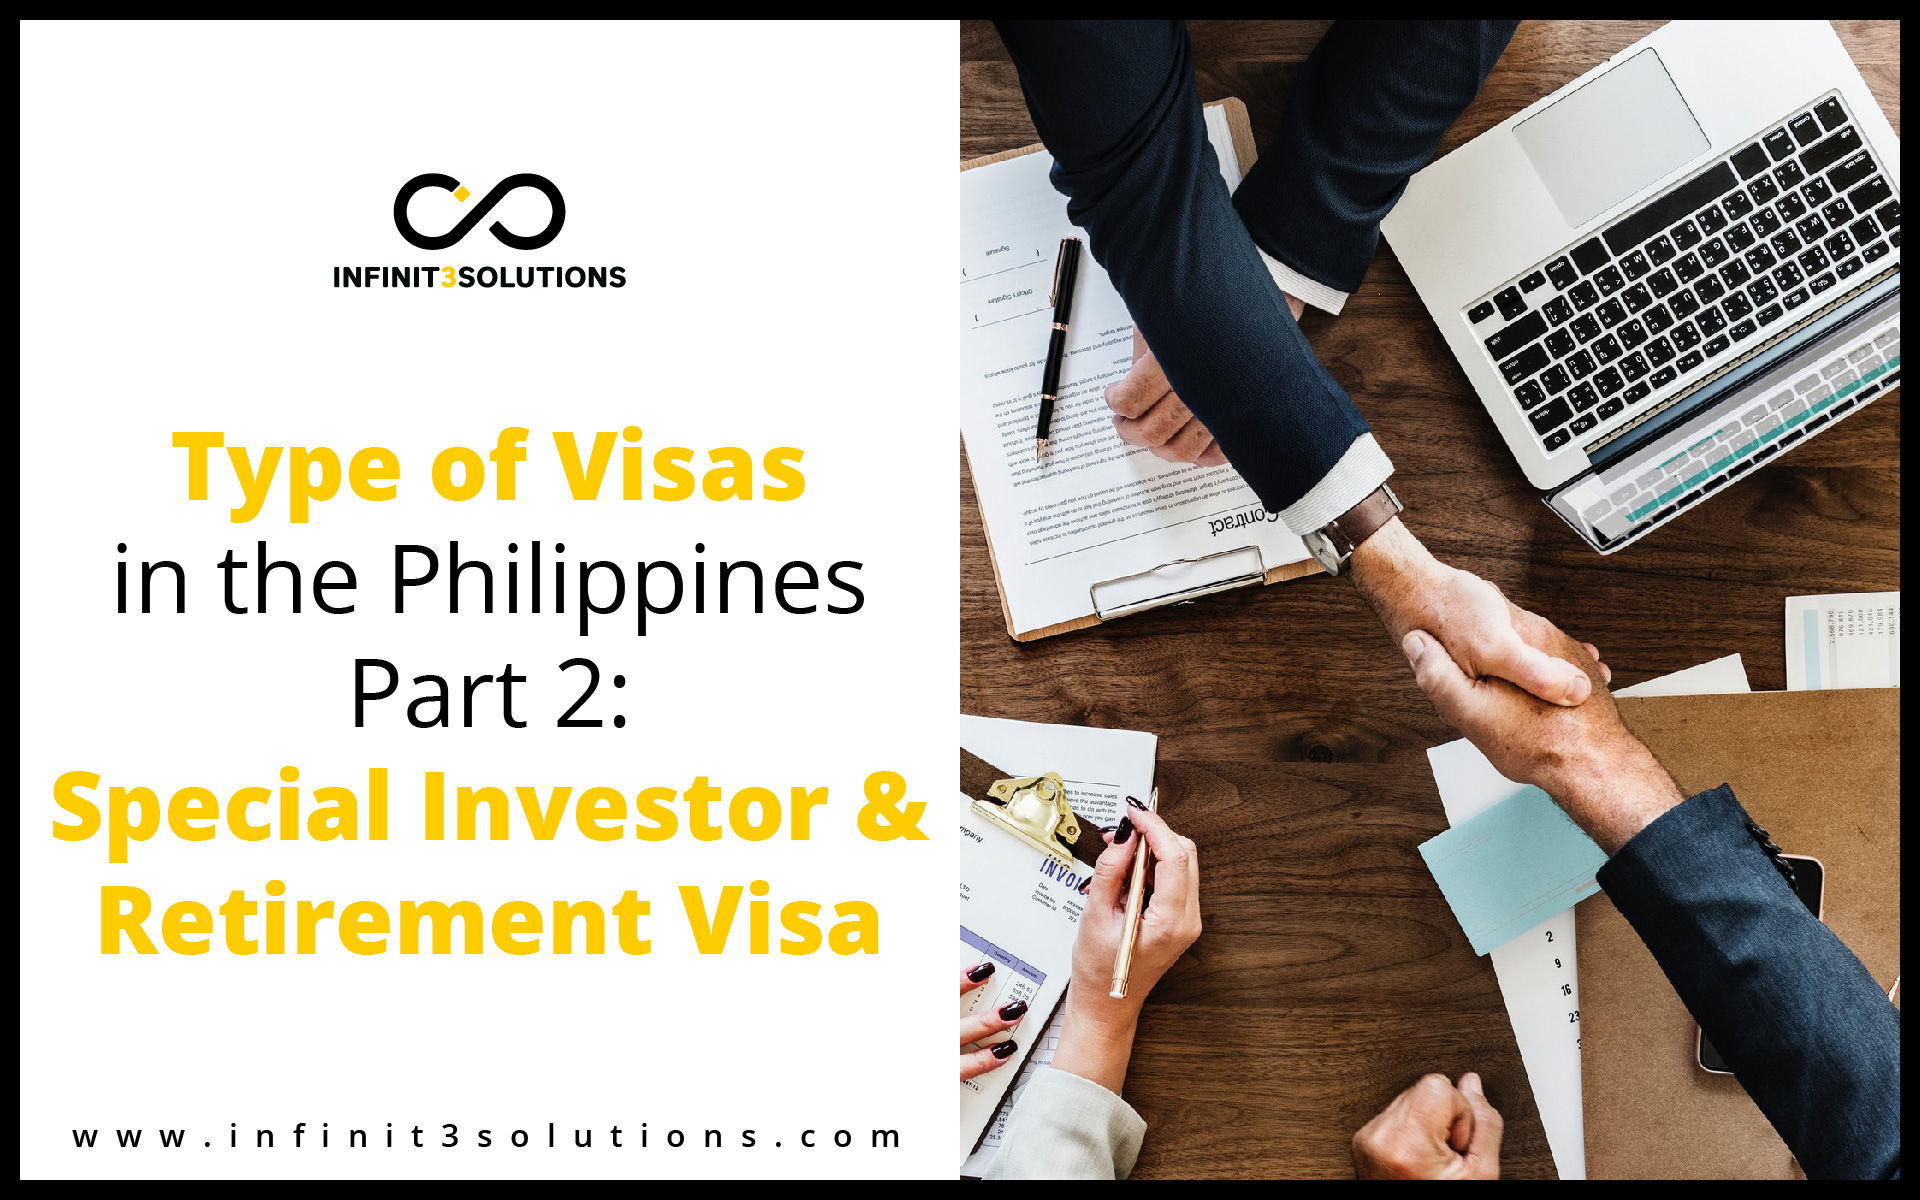 Type of Visas in the Philippines